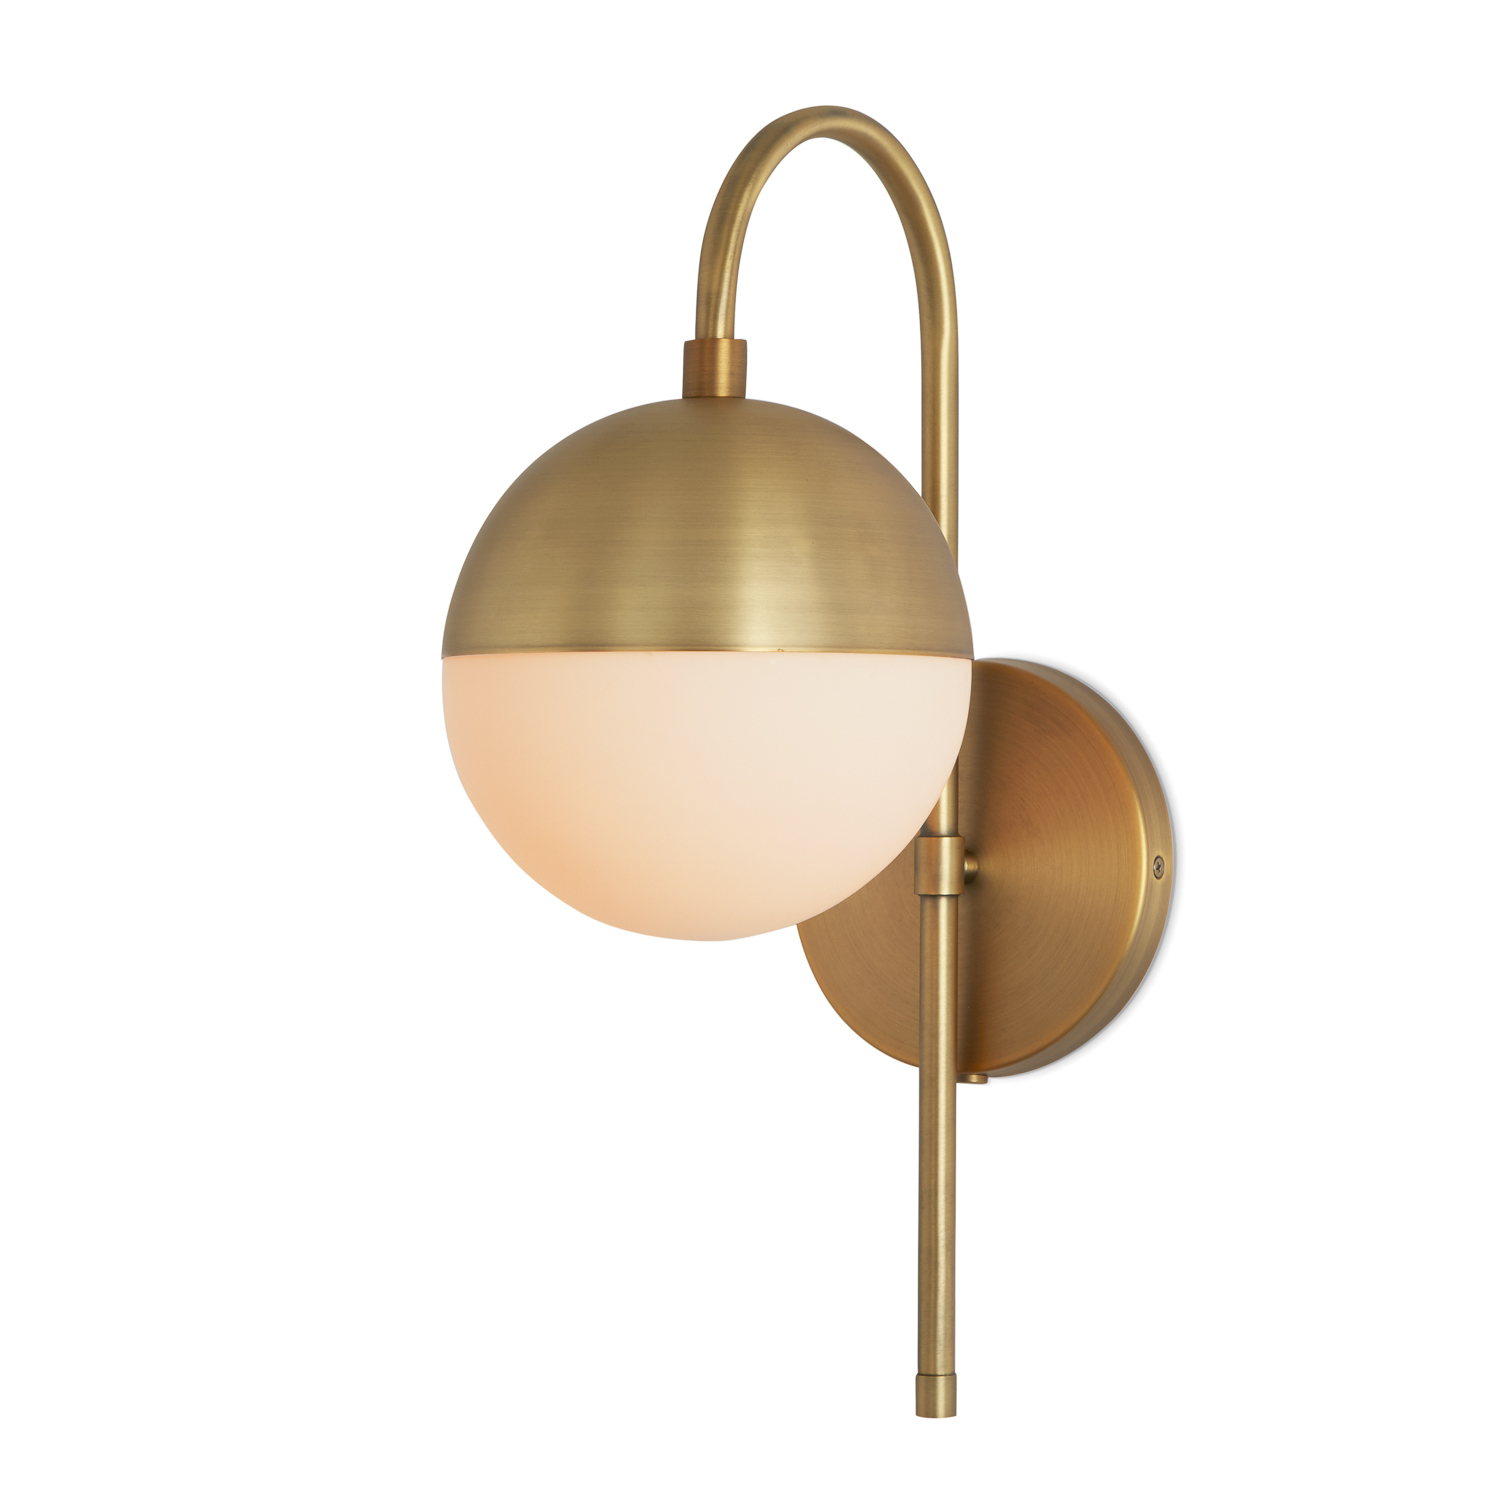 Lights.com | Wall Lights | Powell Wall Sconce with Hooded ... on Brass Wall Sconces Non Electric Lighting id=15111